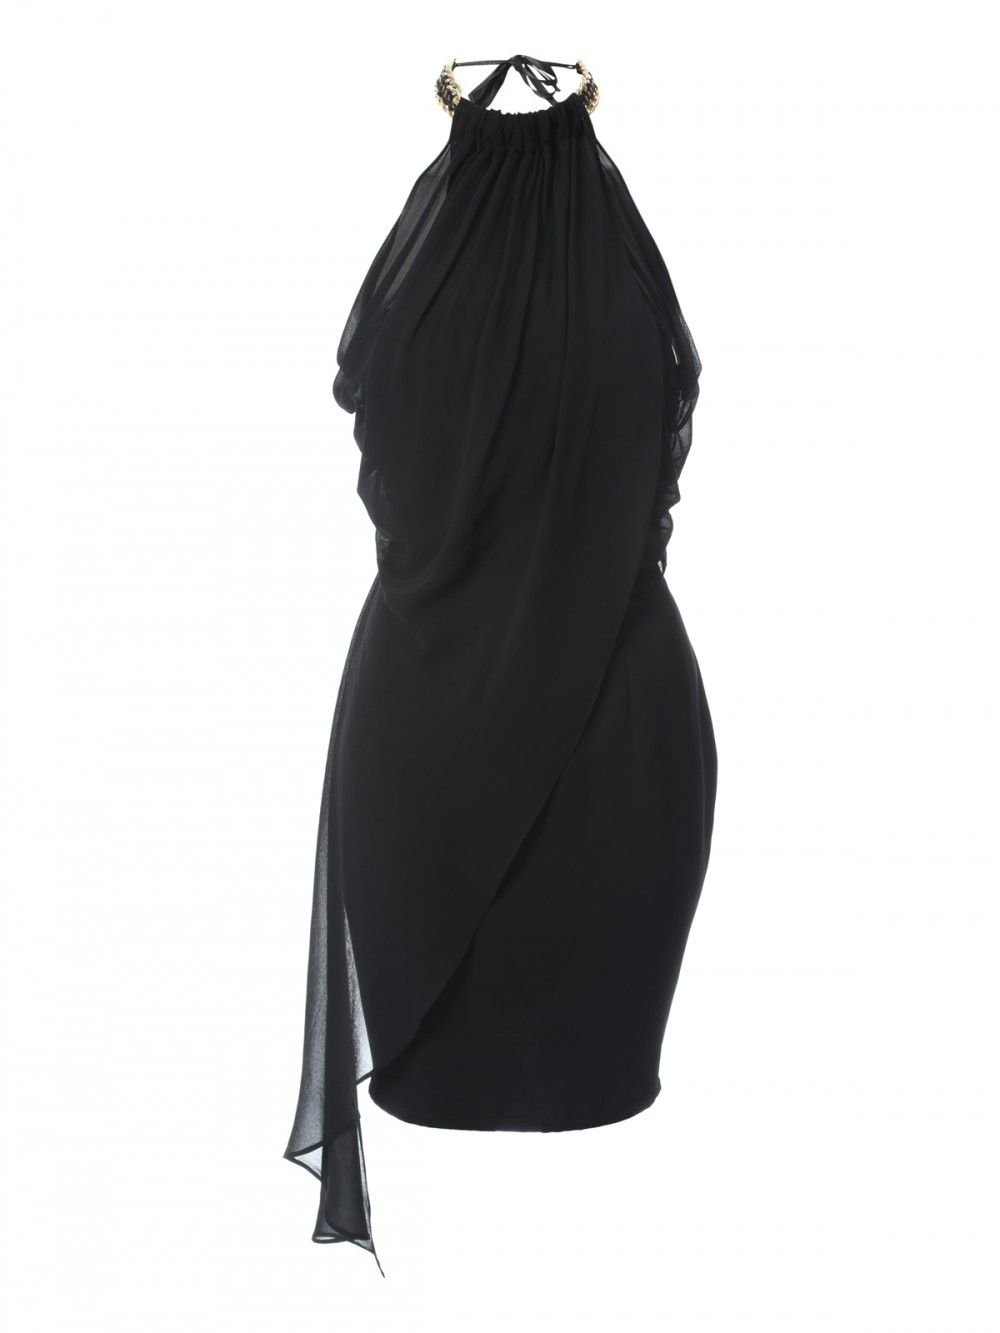 Get a fierce party look this season in this stunning high neck dress